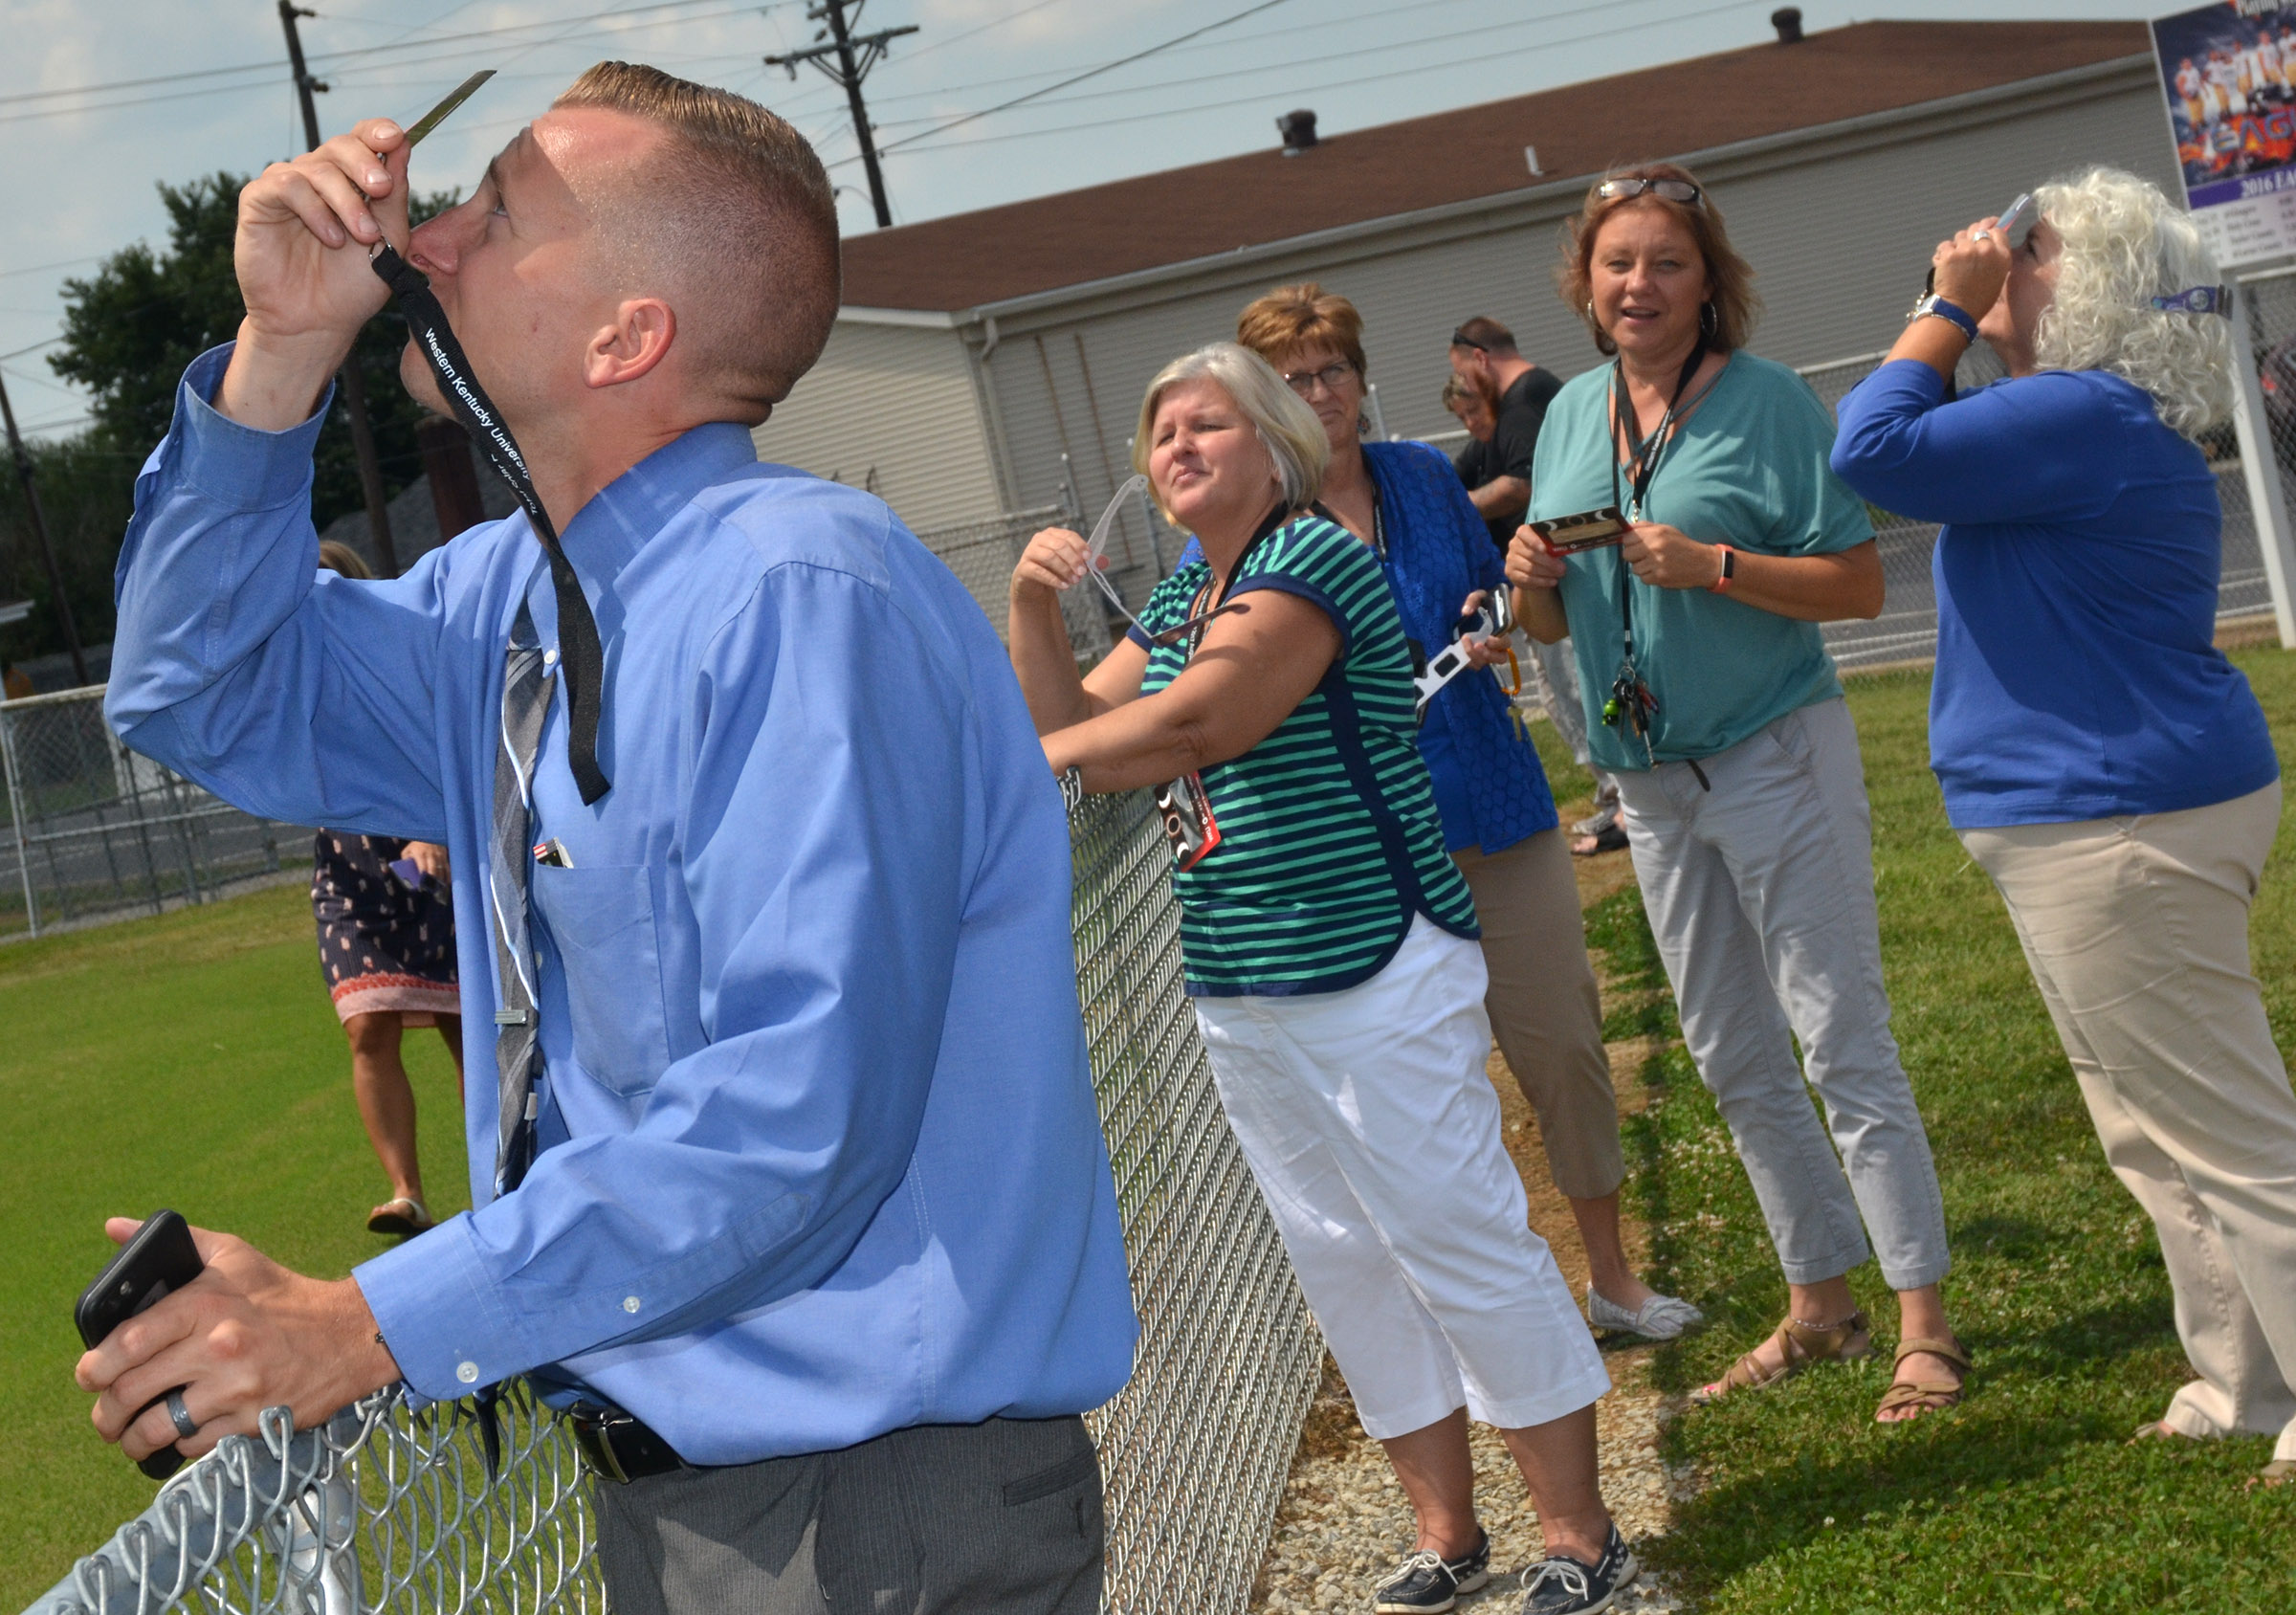 CMS Principal Zach Lewis views the eclipse with his teachers.